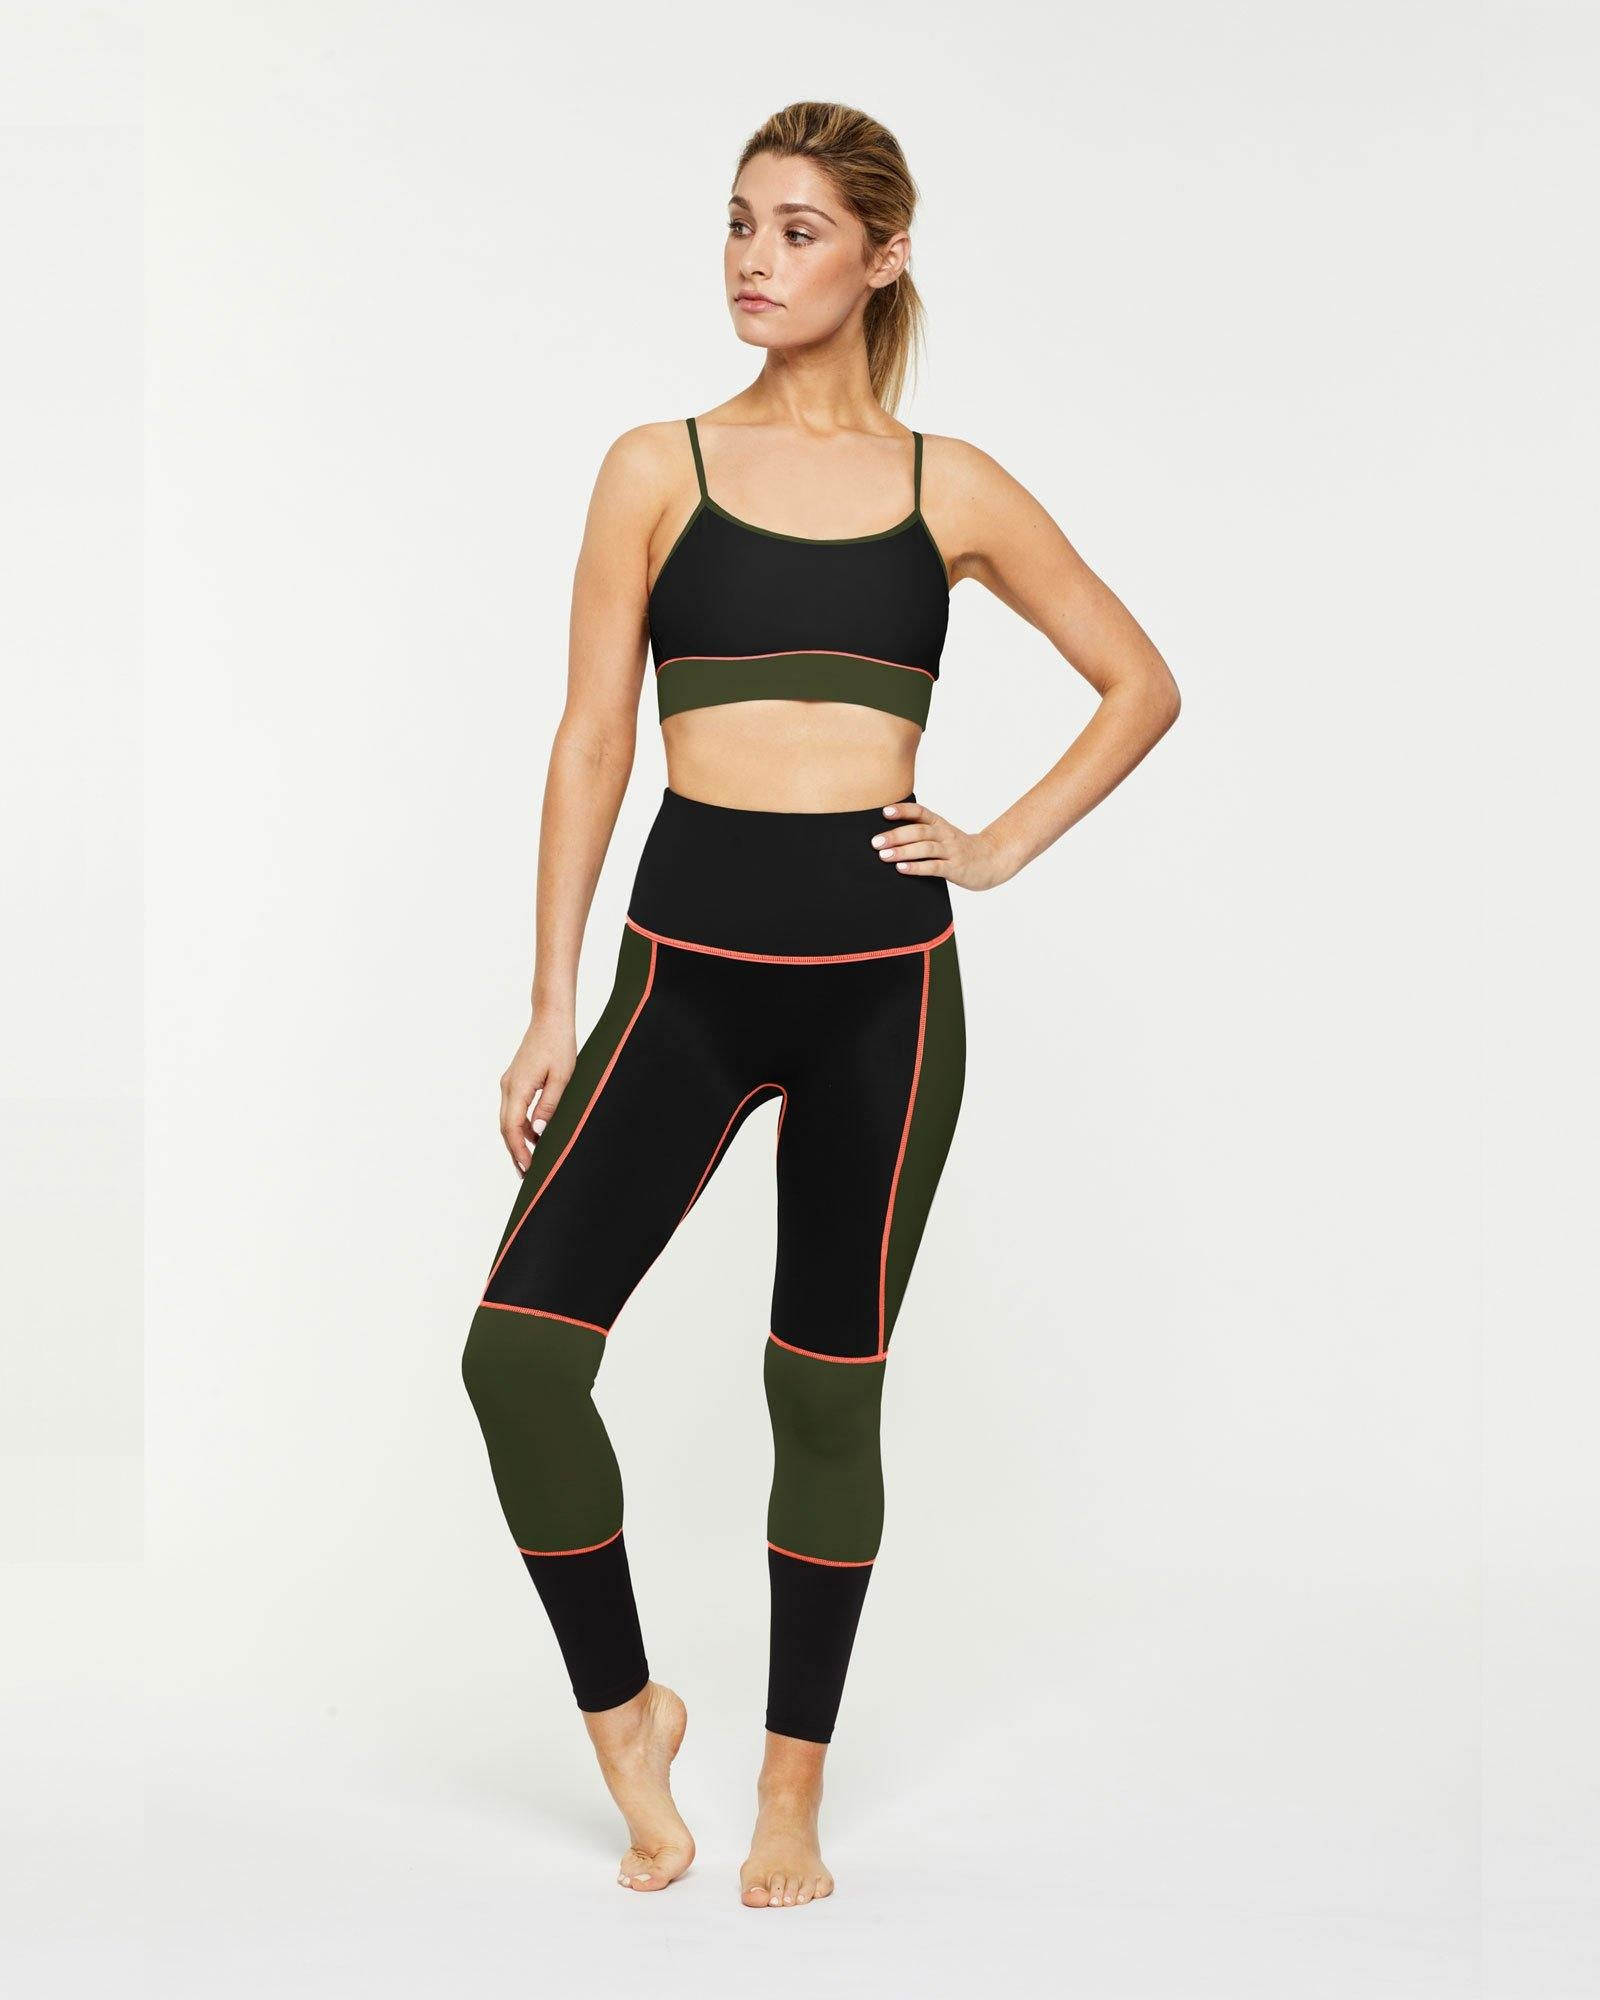 Sergeant Olive GRACILIS 7/8 HIGH WAISTED LEGGING Black WITH CONTRAST PANELS in dark Olive and contrast orange stitching worn with Infraspinatus bra top, front VIEW for pilates, barre, yoga, dance, gym-workouts